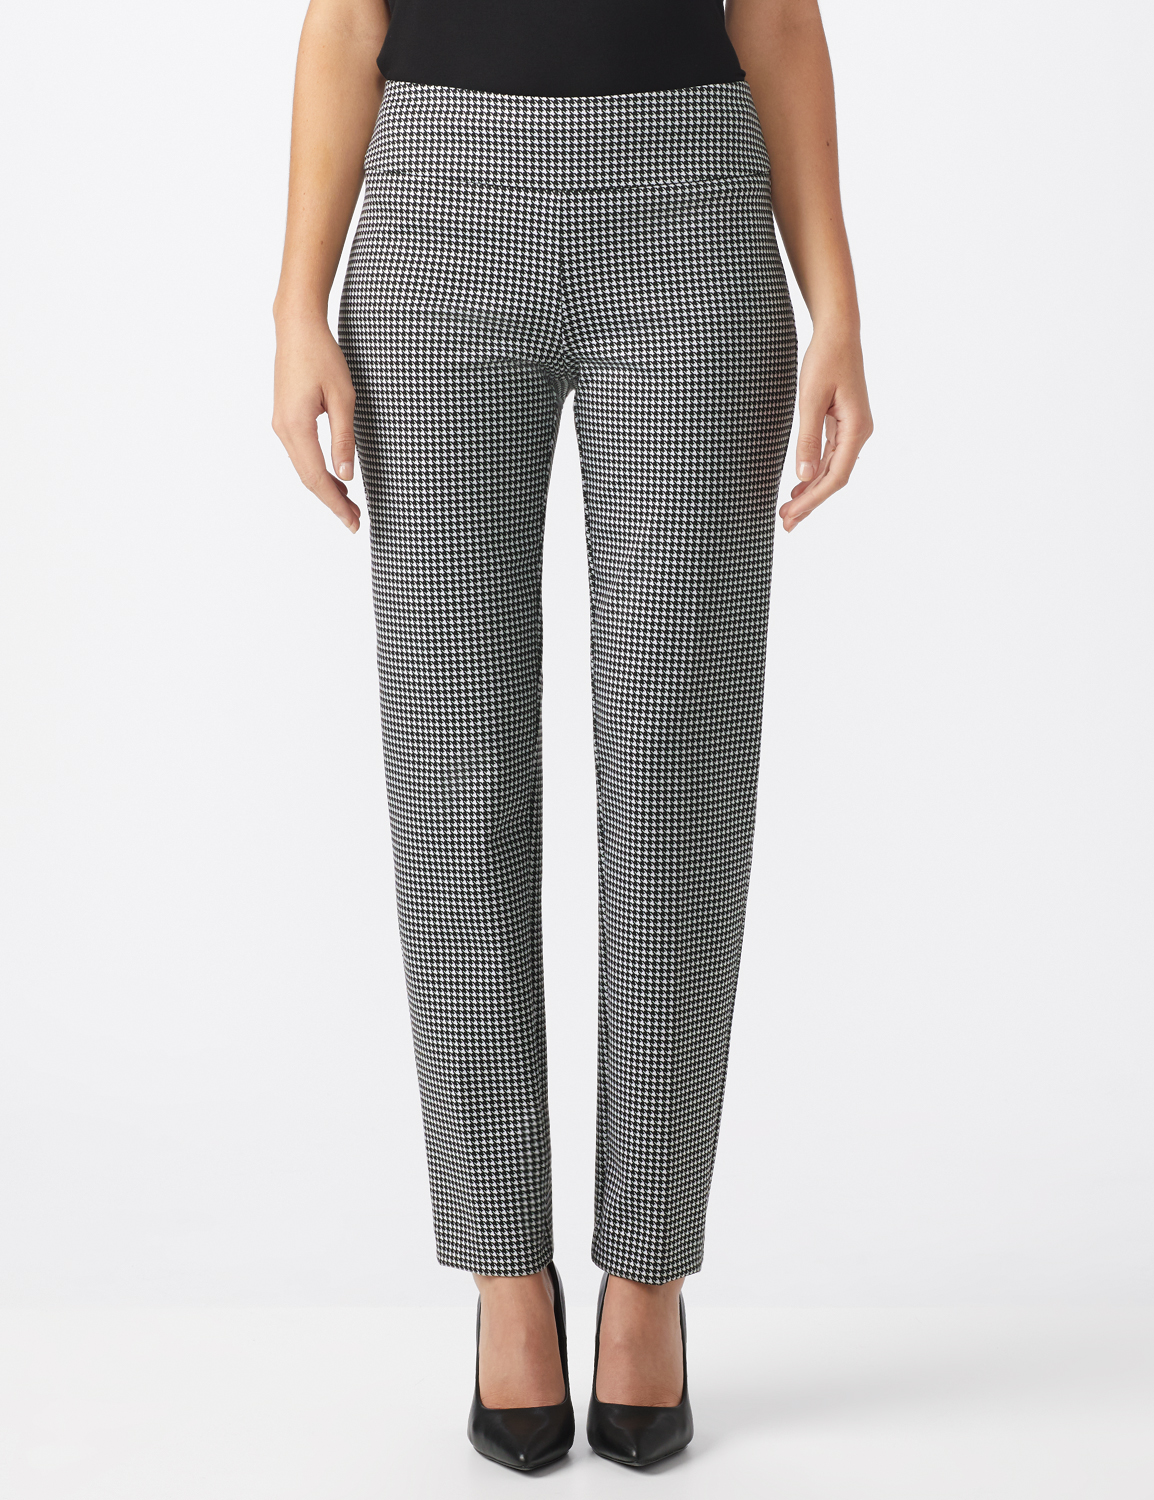 Pull On Houndstooth Print Compression Pant -Black/Sugar swizzle - Front